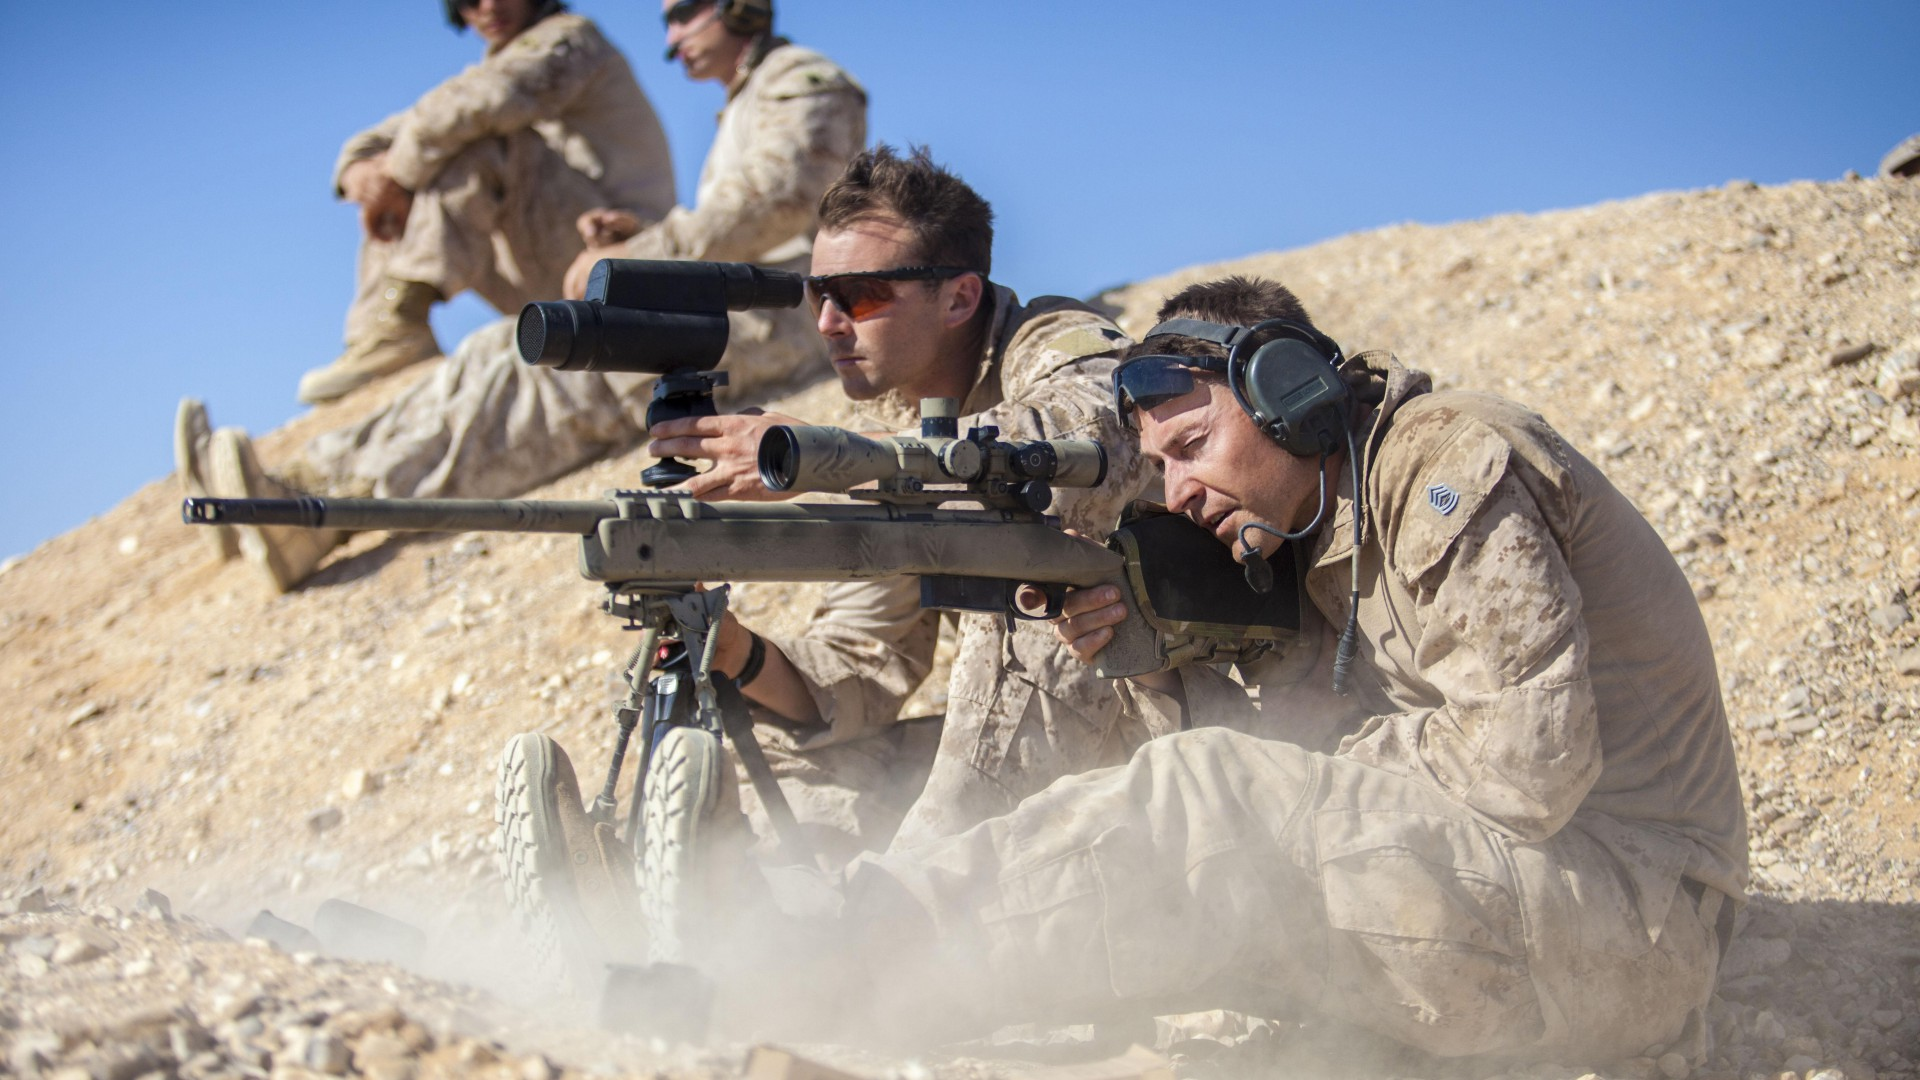 Chris Kyle, sniper, sniper rifle, biography, US Army, USA, firing, American Sniper, Most Lethal Sniper (horizontal)